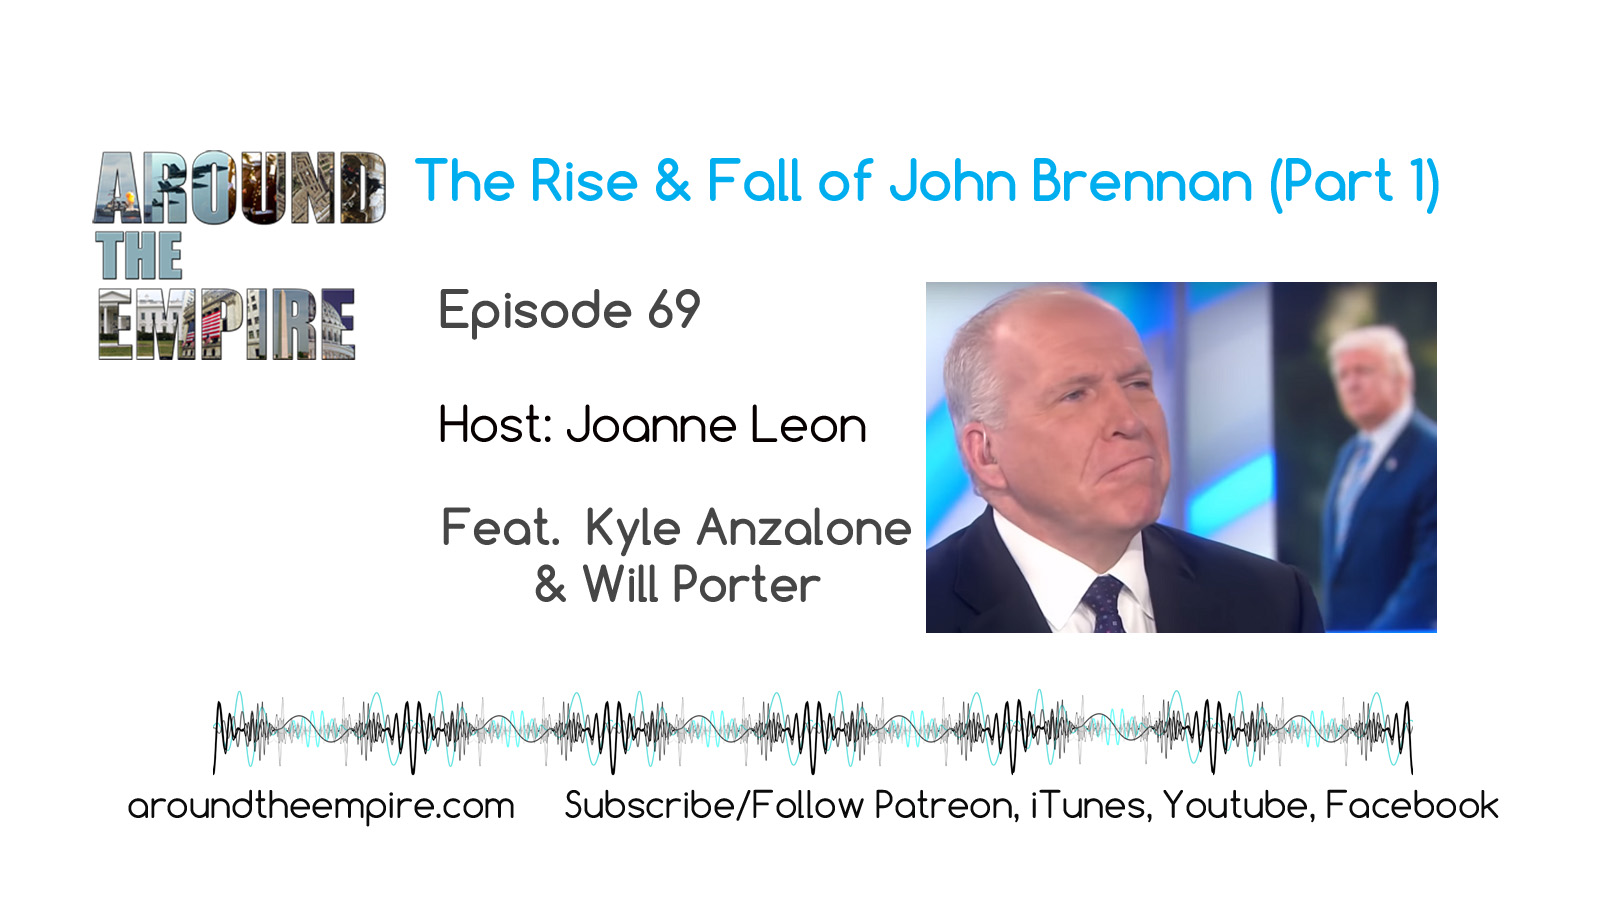 Ep 60 The Rise and Fall of John Brennan Part 1